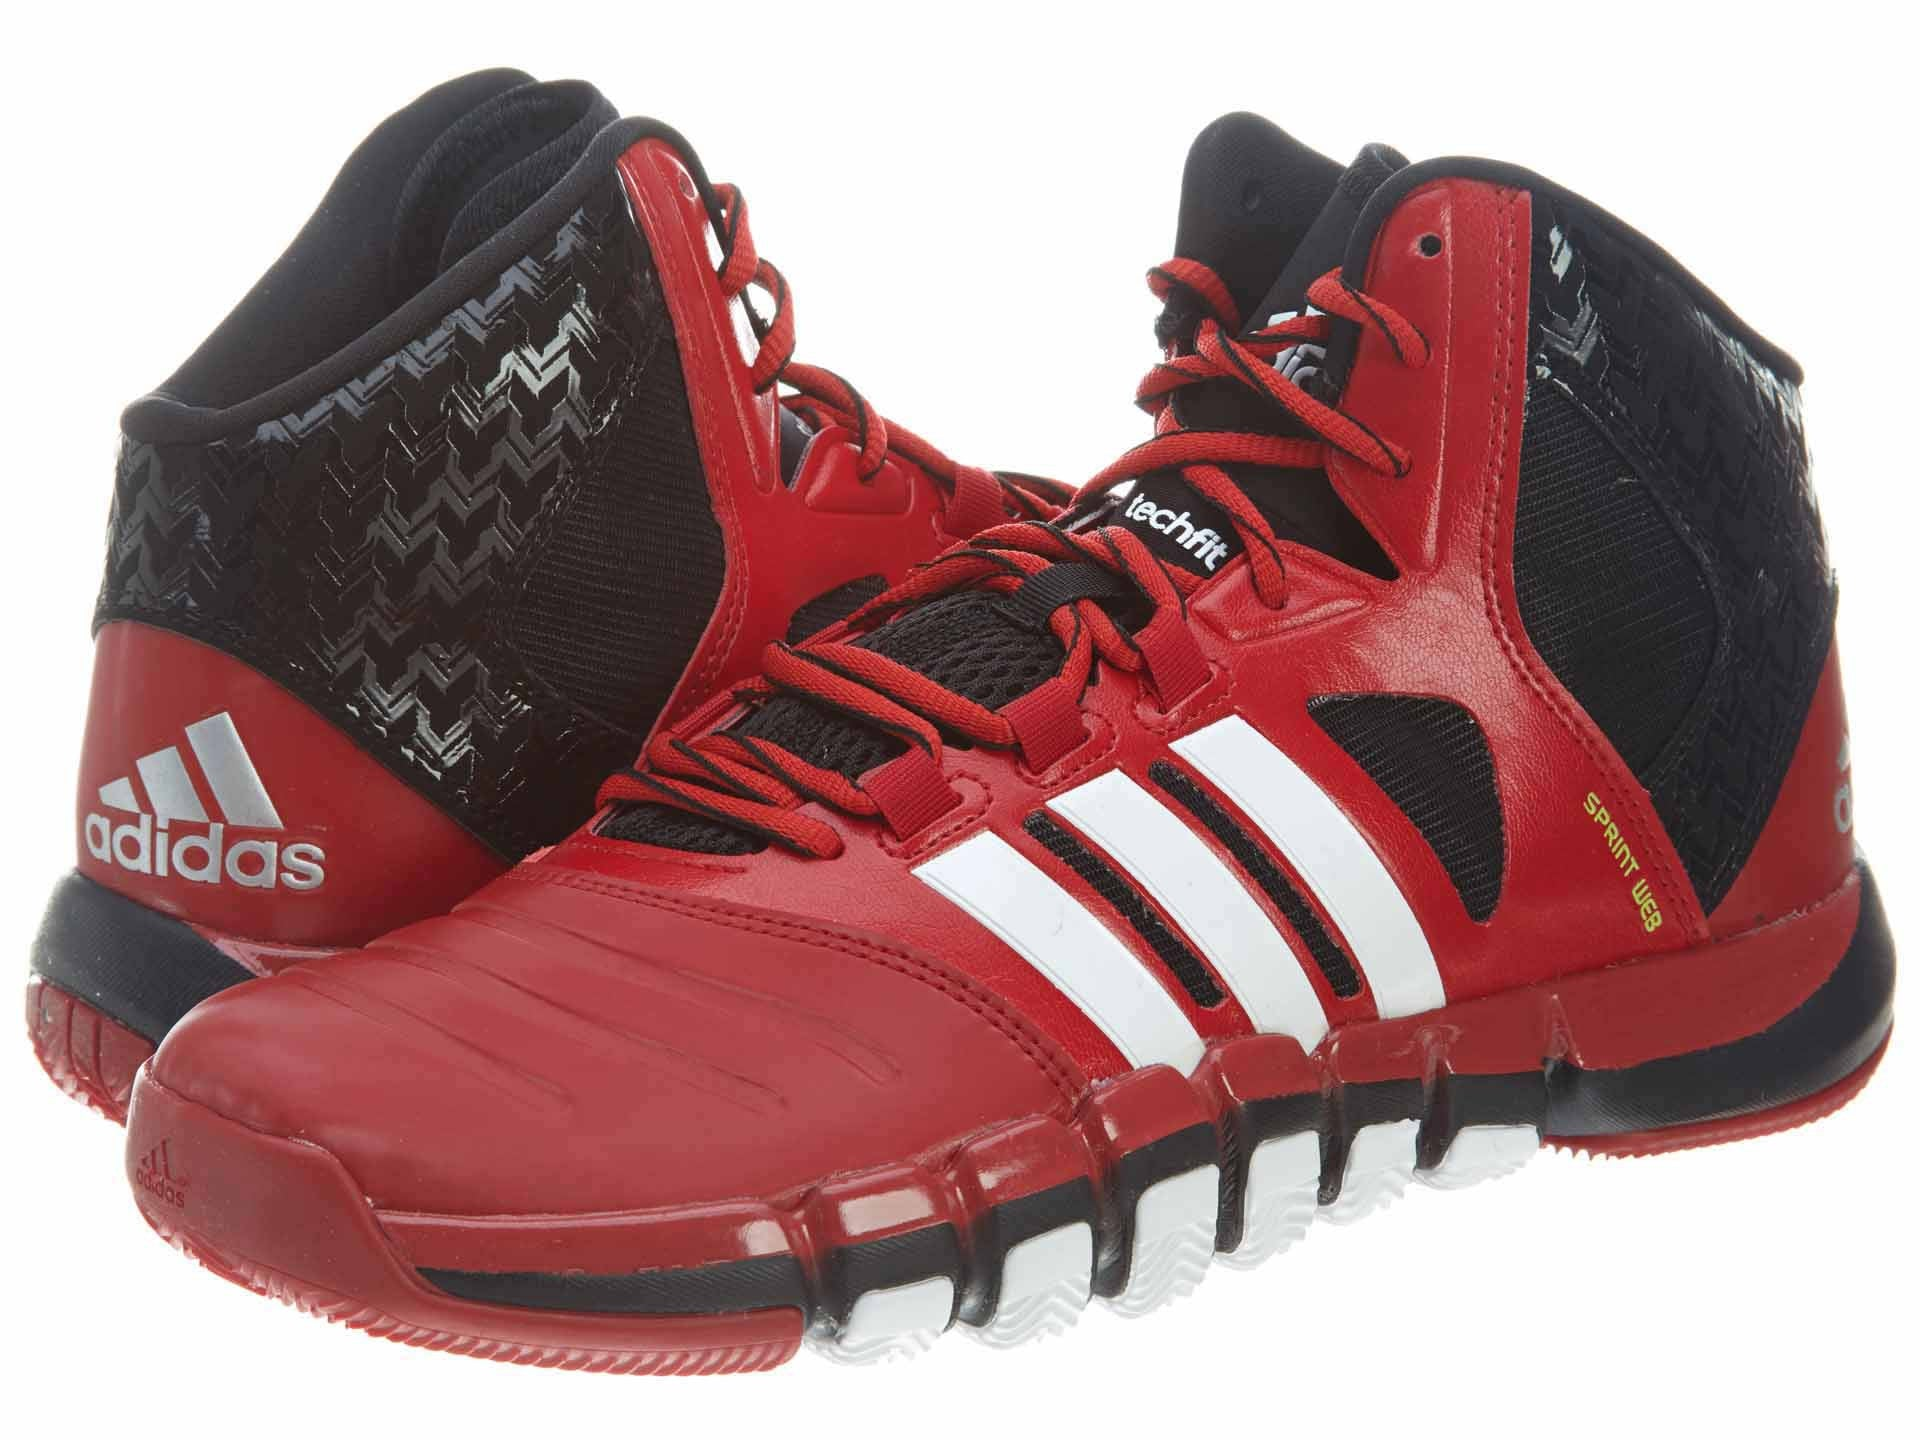 official site good out x promo codes Adidas Adipure Crazy Ghost Mens Style G99071